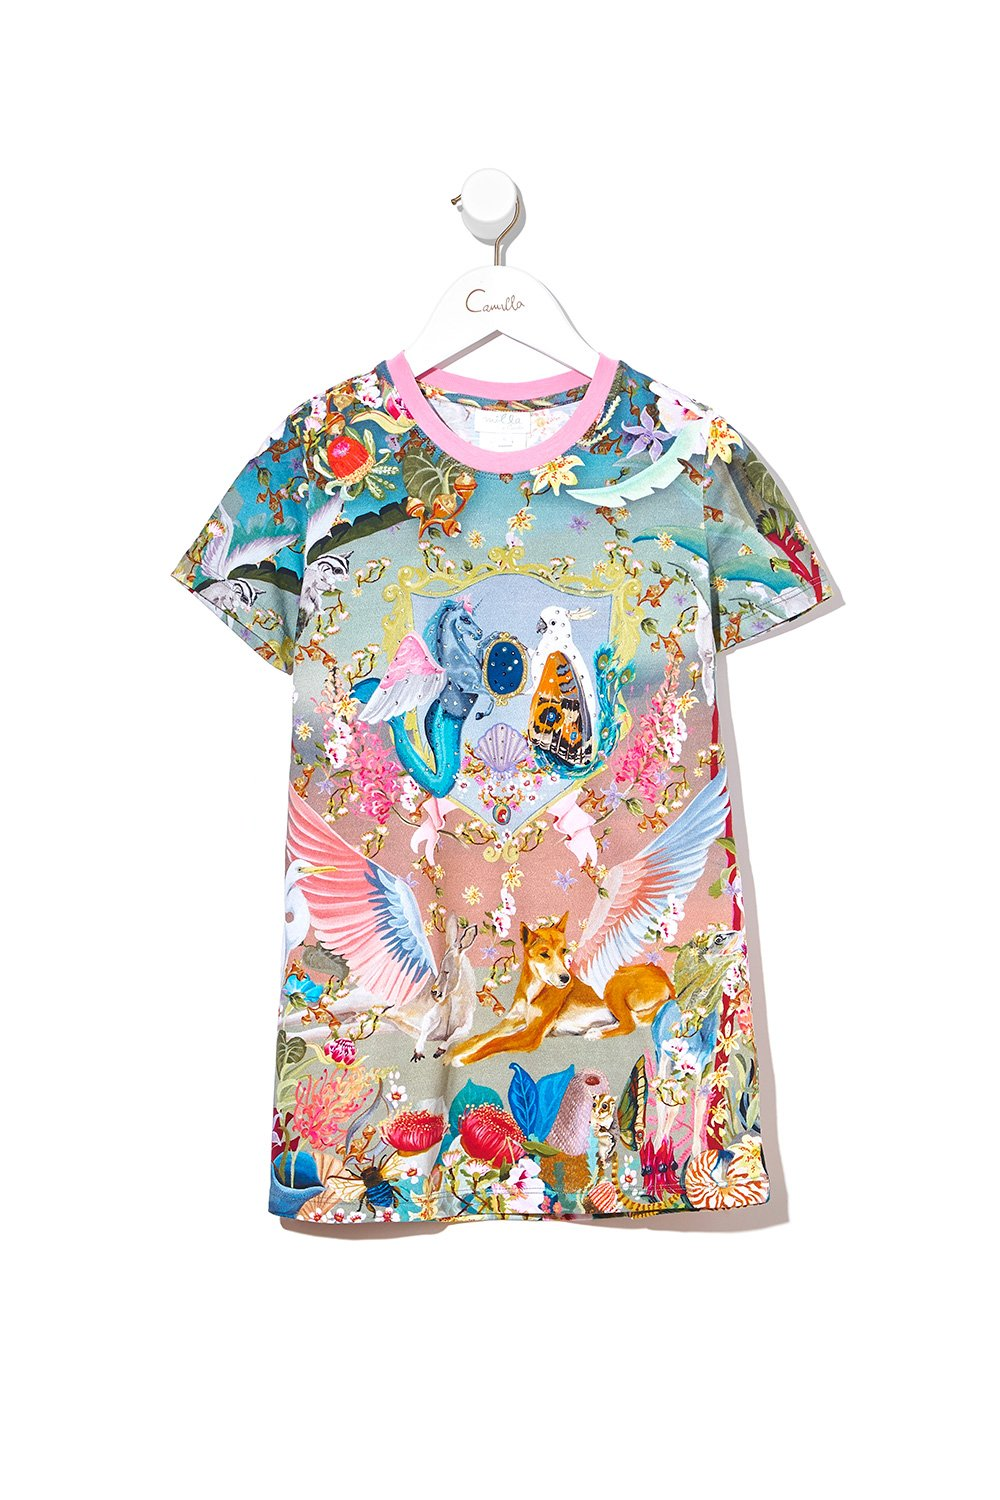 KIDS TSHIRT DRESS LETS TAKE A TRIP